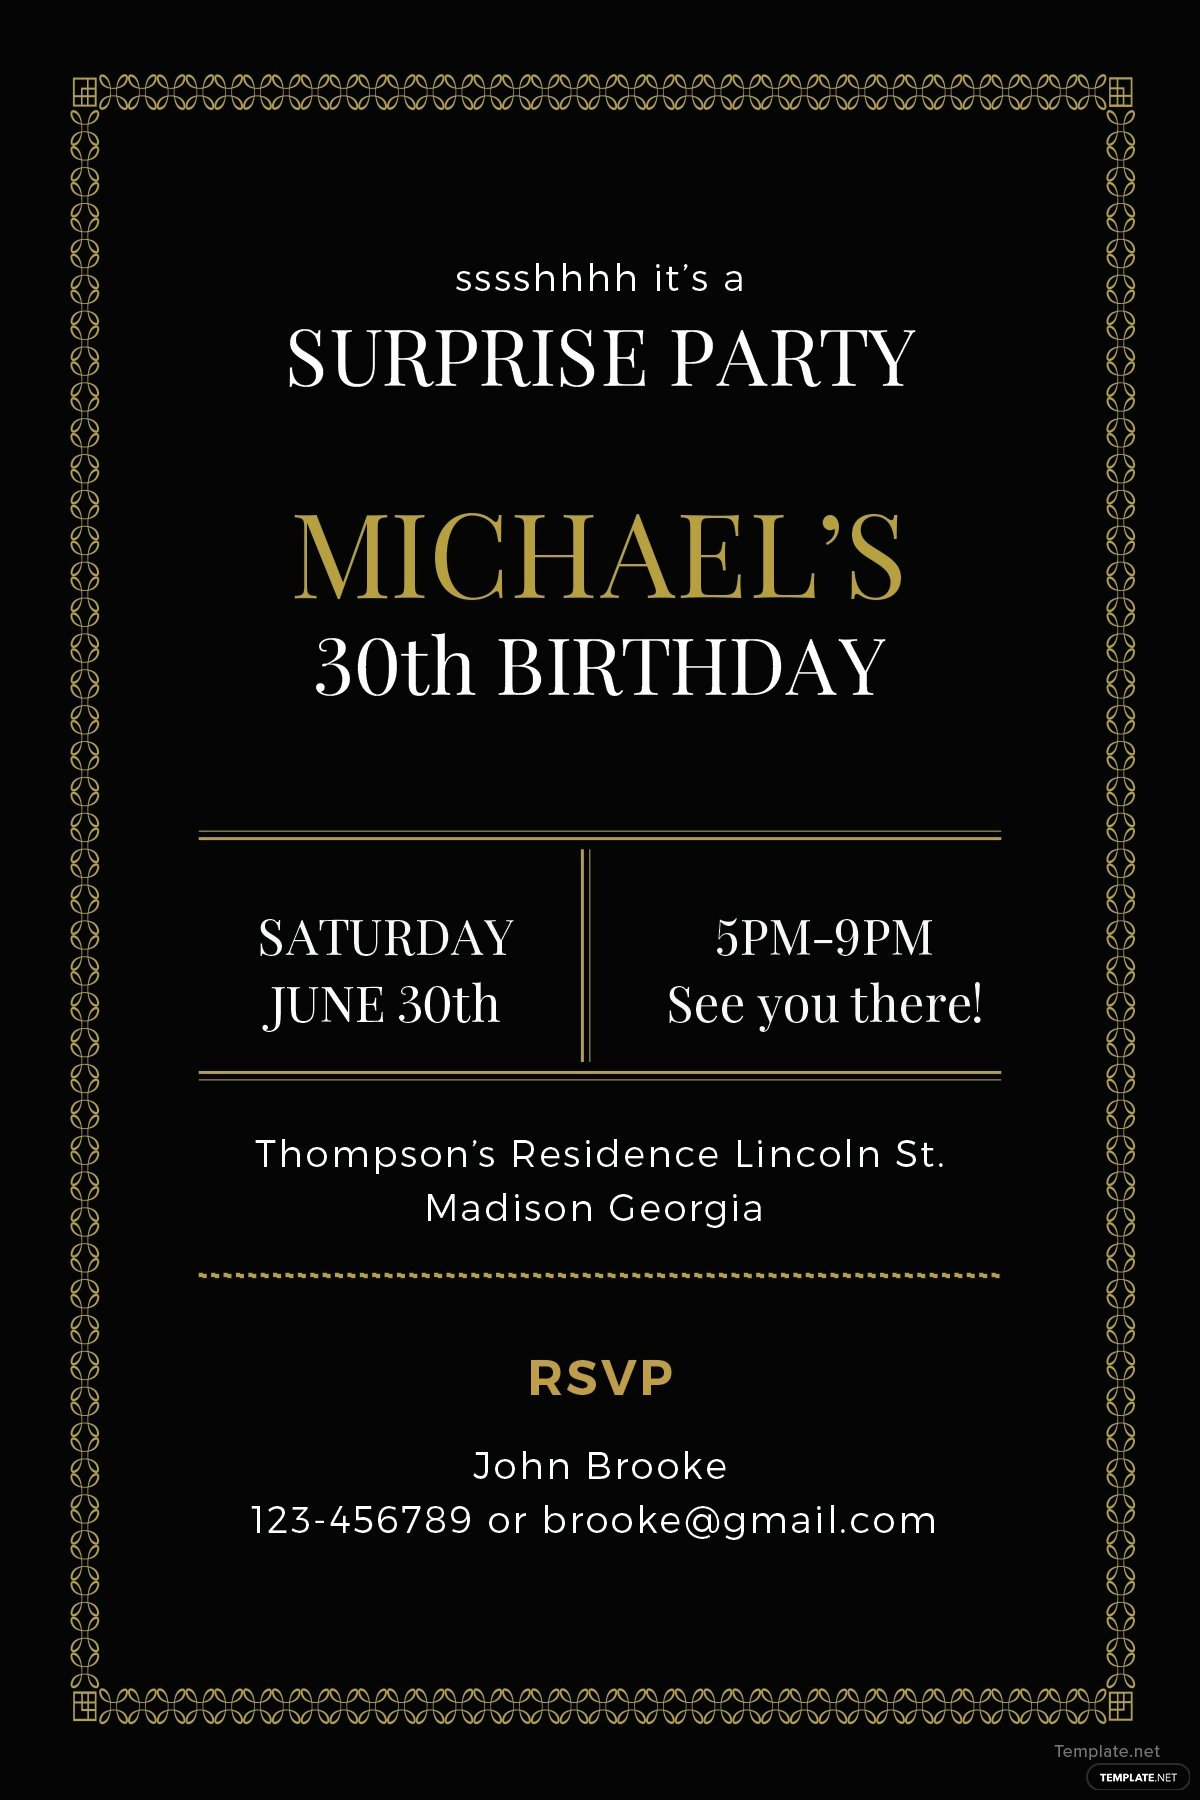 Free Surprise Party Invitations Lovely Free Surprise Party Invitation Template In Adobe